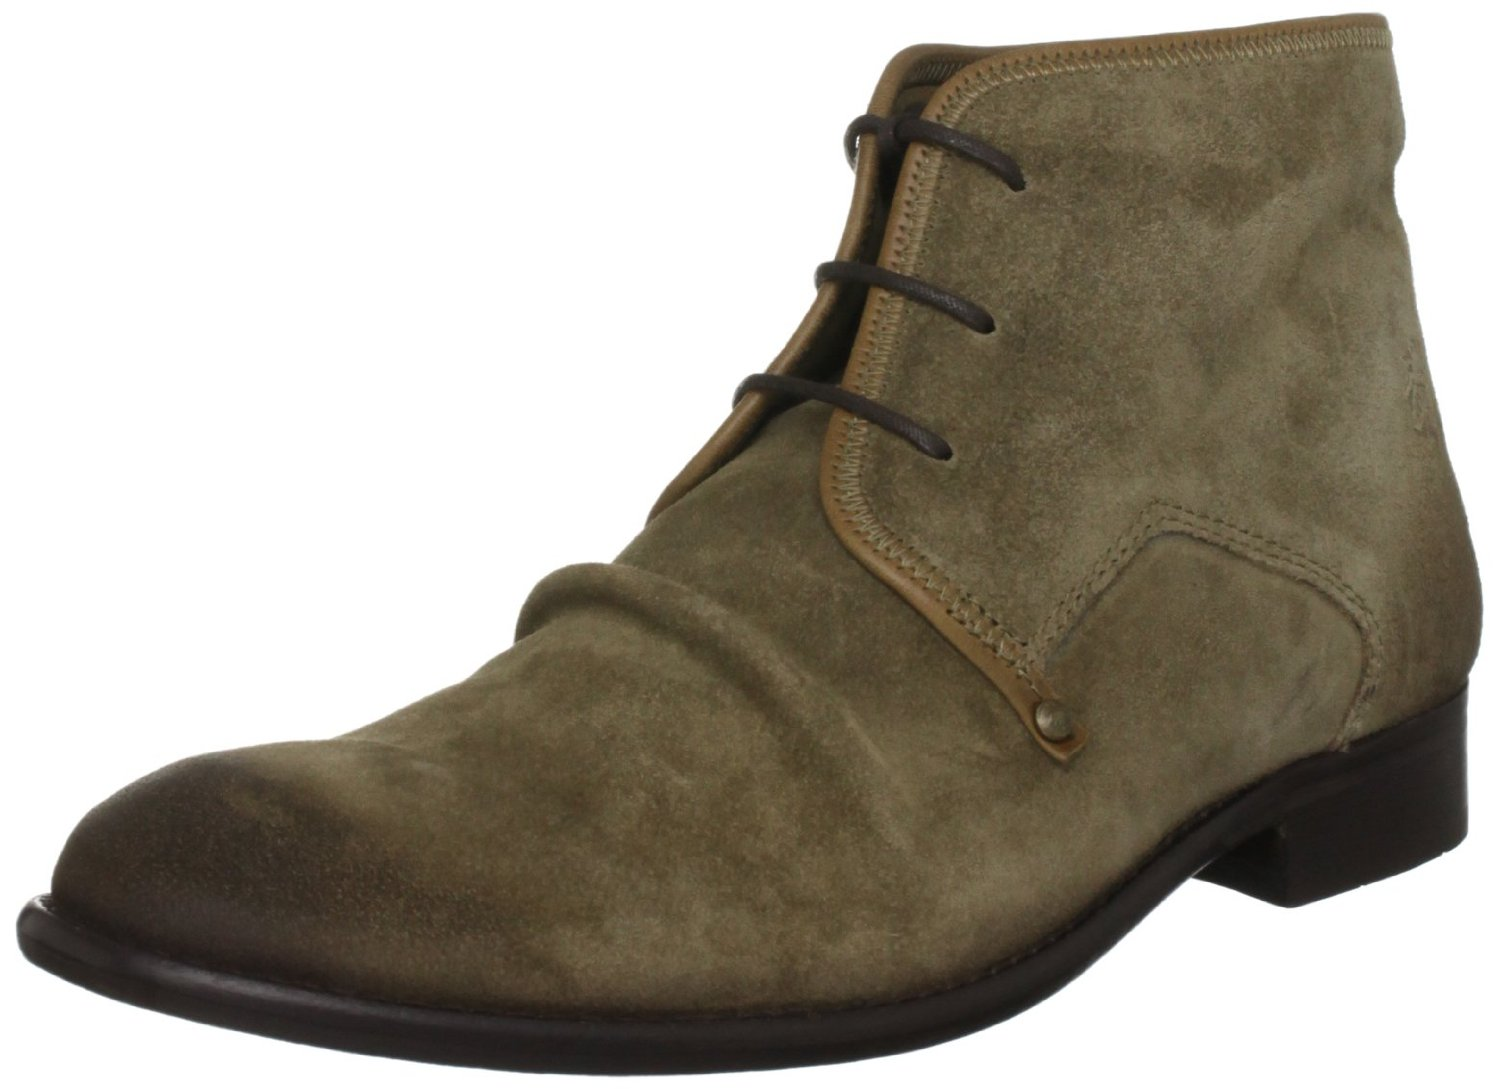 fly mens watt sand camel new suede boots shoes ebay